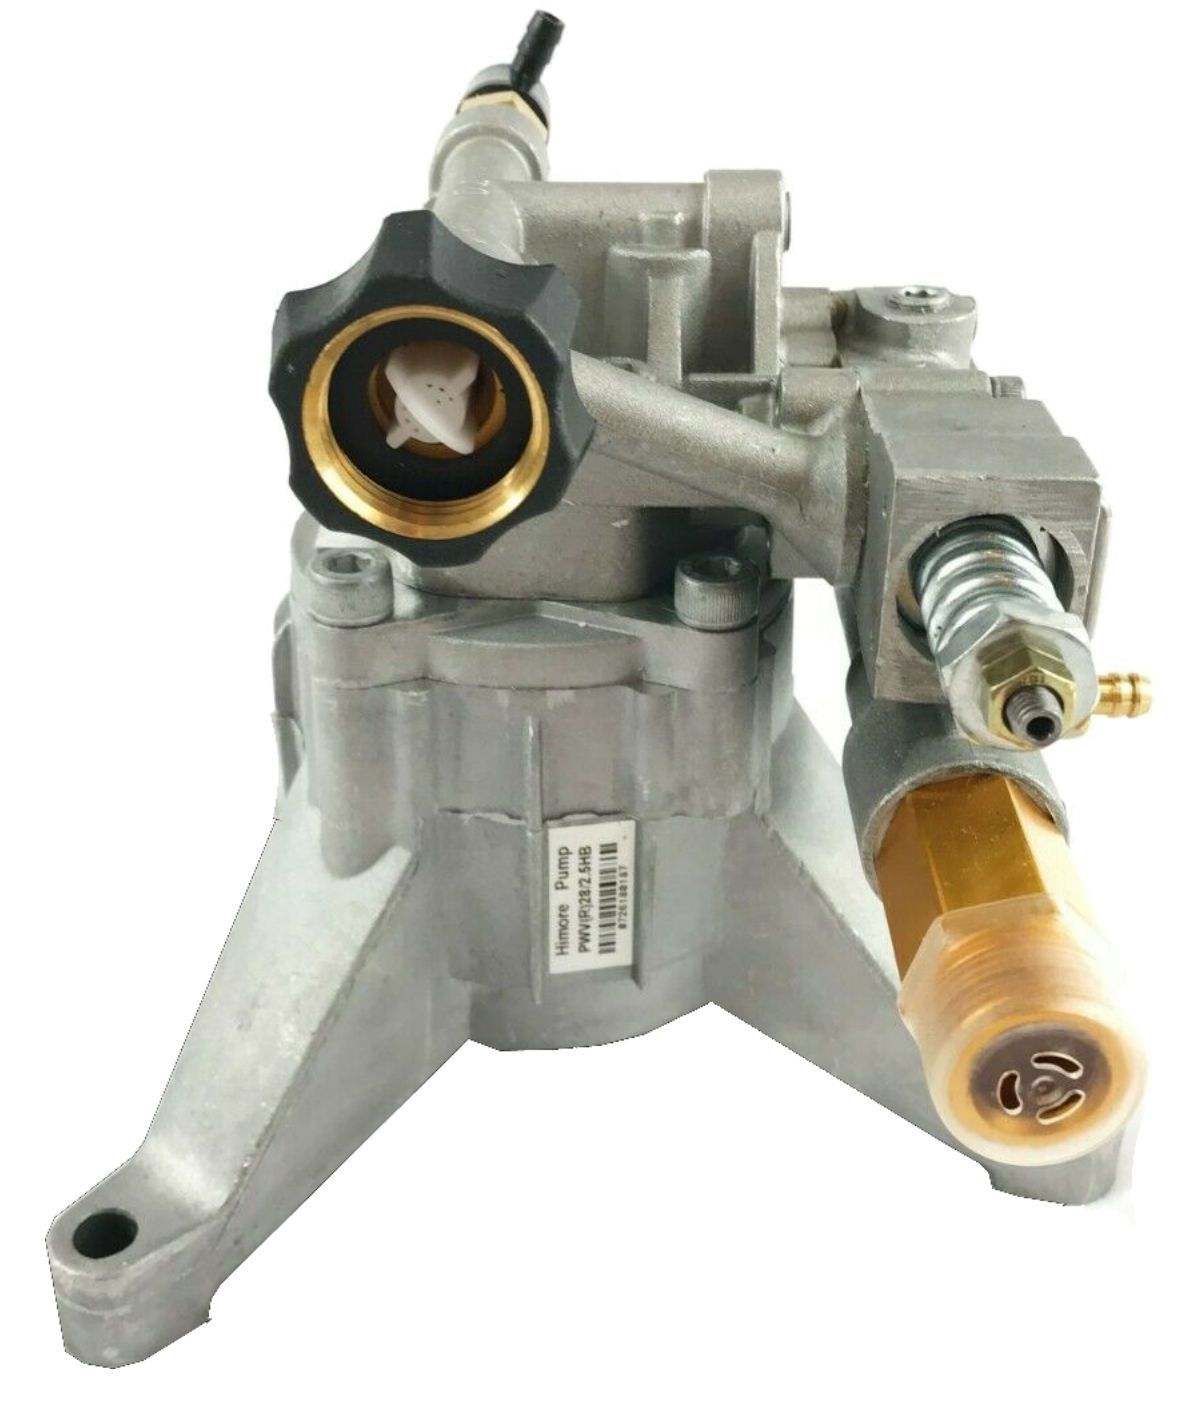 2700 PSI PRESSURE WASHER WATER PUMP Briggs & Stratton 580.752000 1899-1 - AE-Power